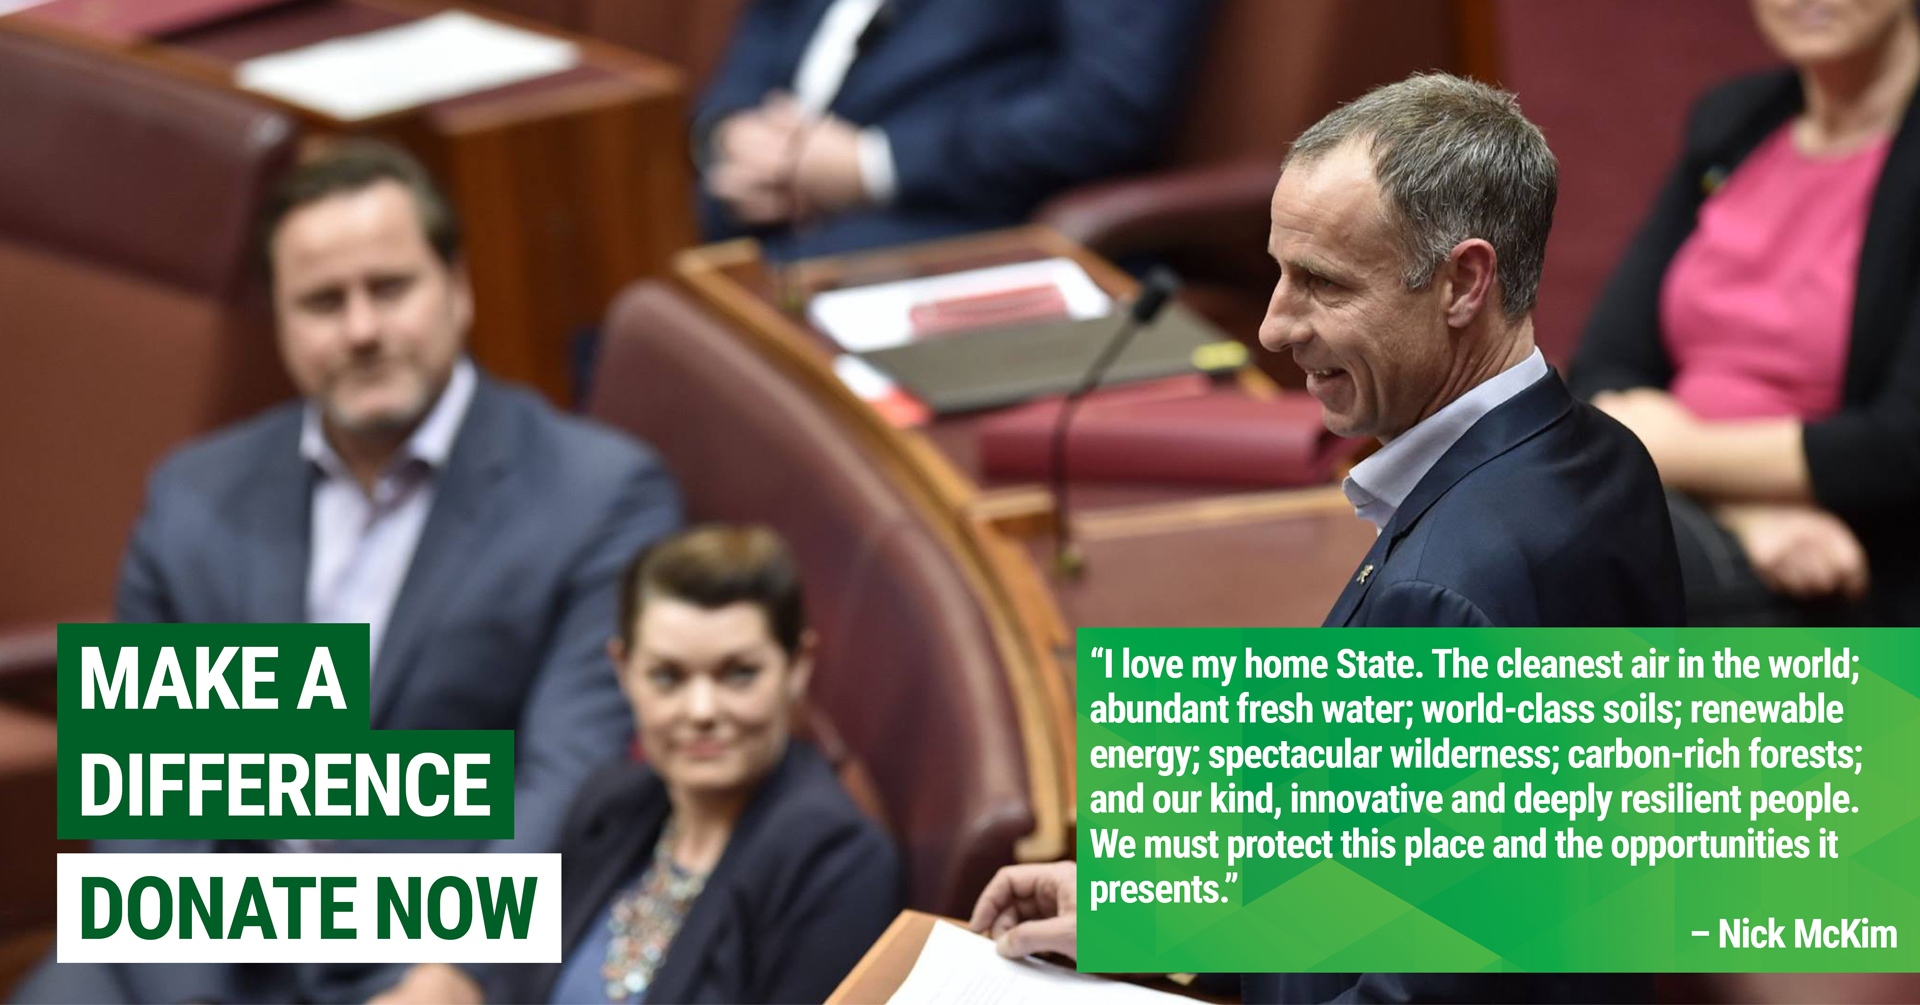 Donate Now to the Tasmanian Greens